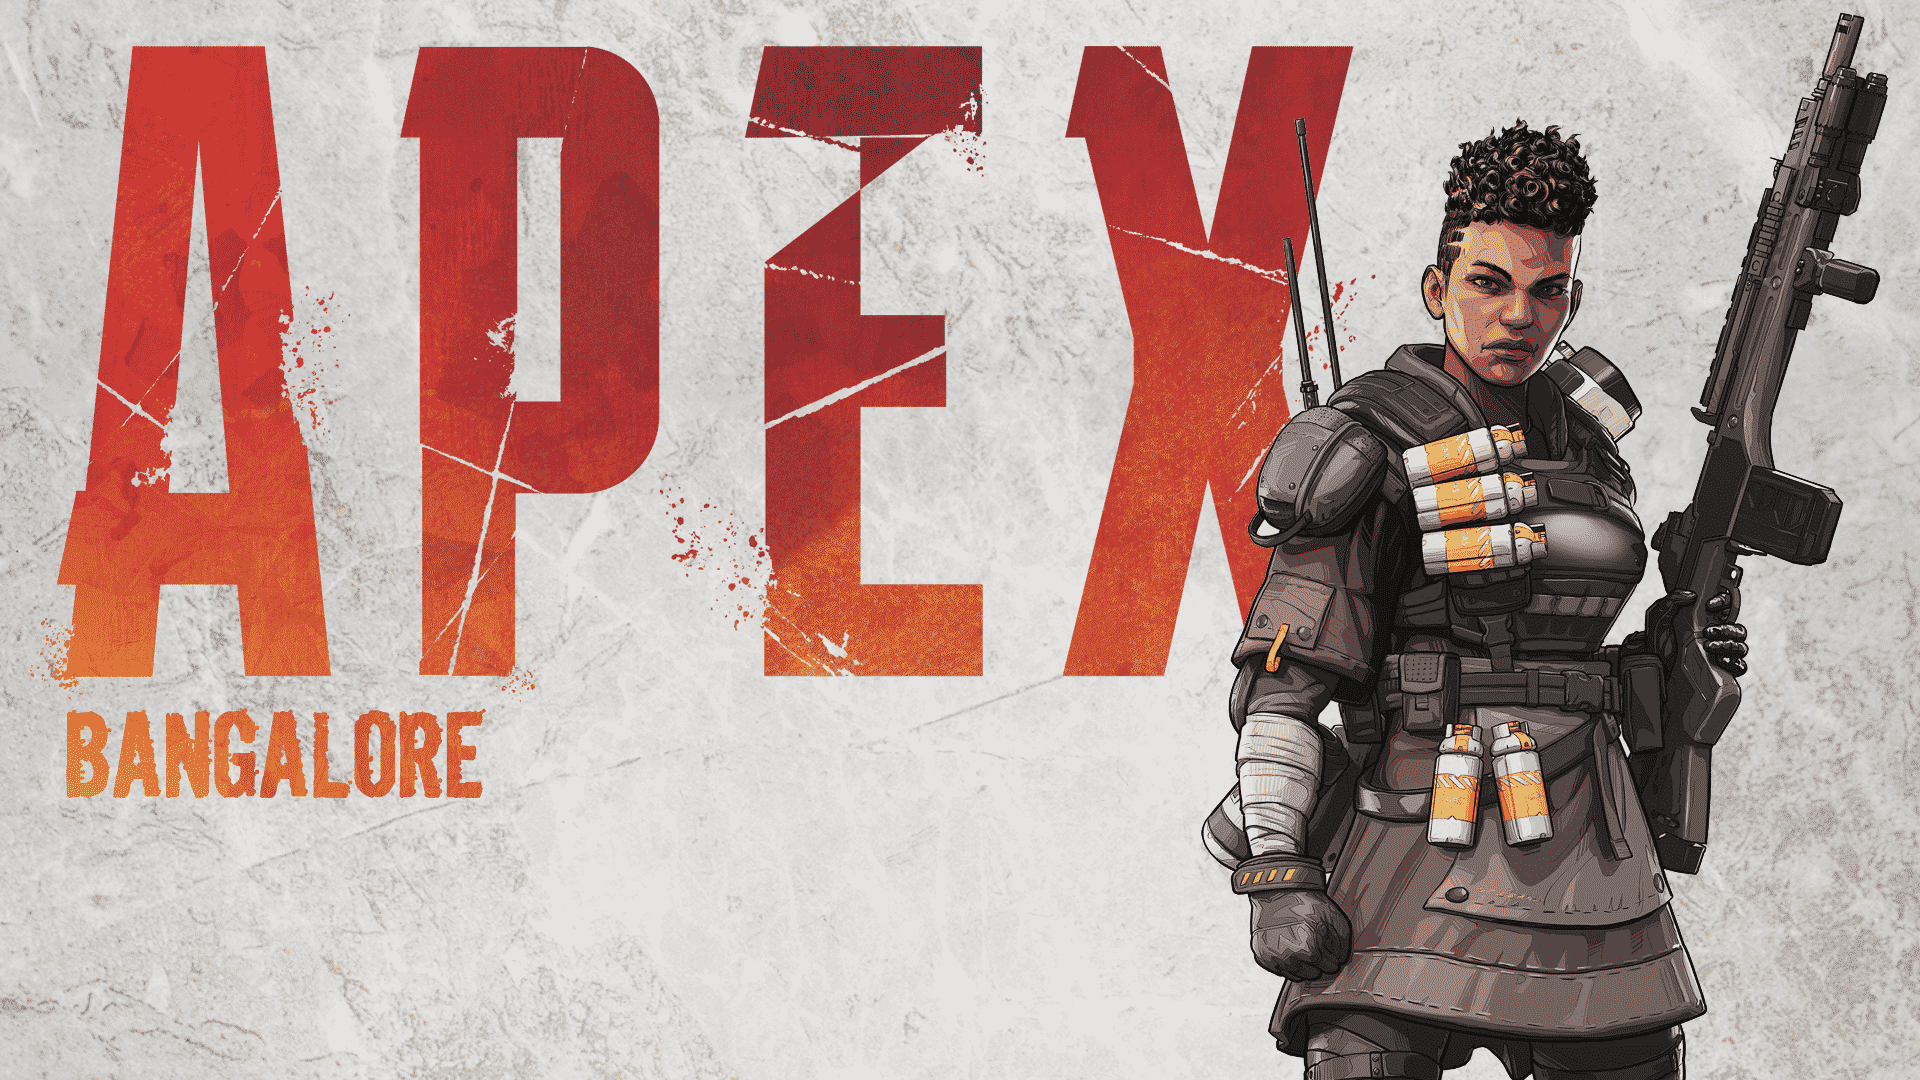 Bangalore, Professional Soldier, Apex Legends